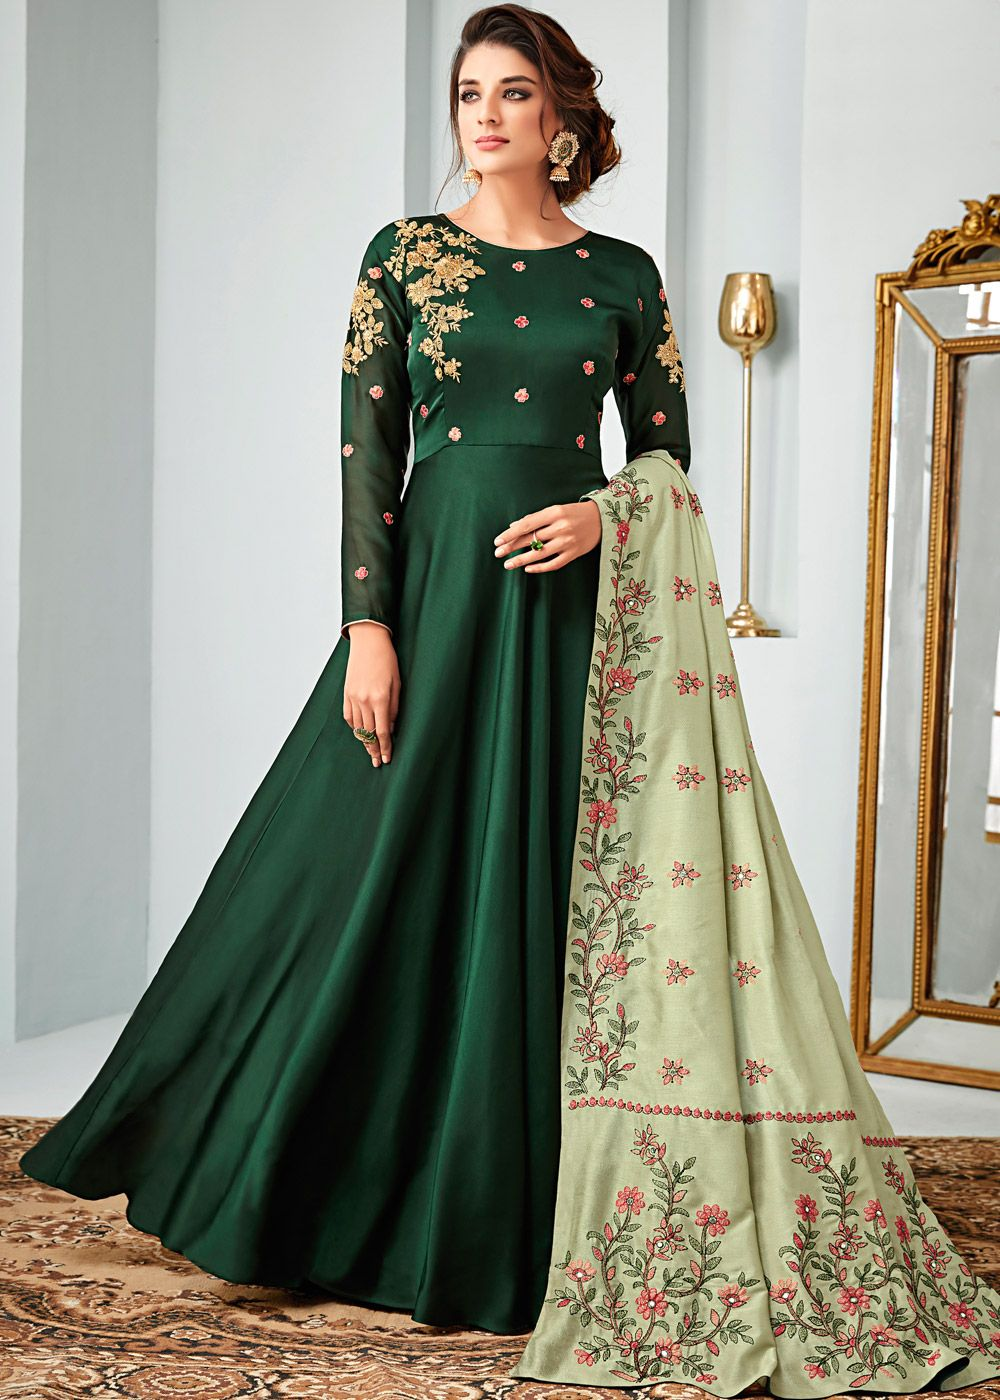 ce5184c0d0599 Featuring a green georgette satin flared kameez crafted with minimal zari  embroidery and stone work.